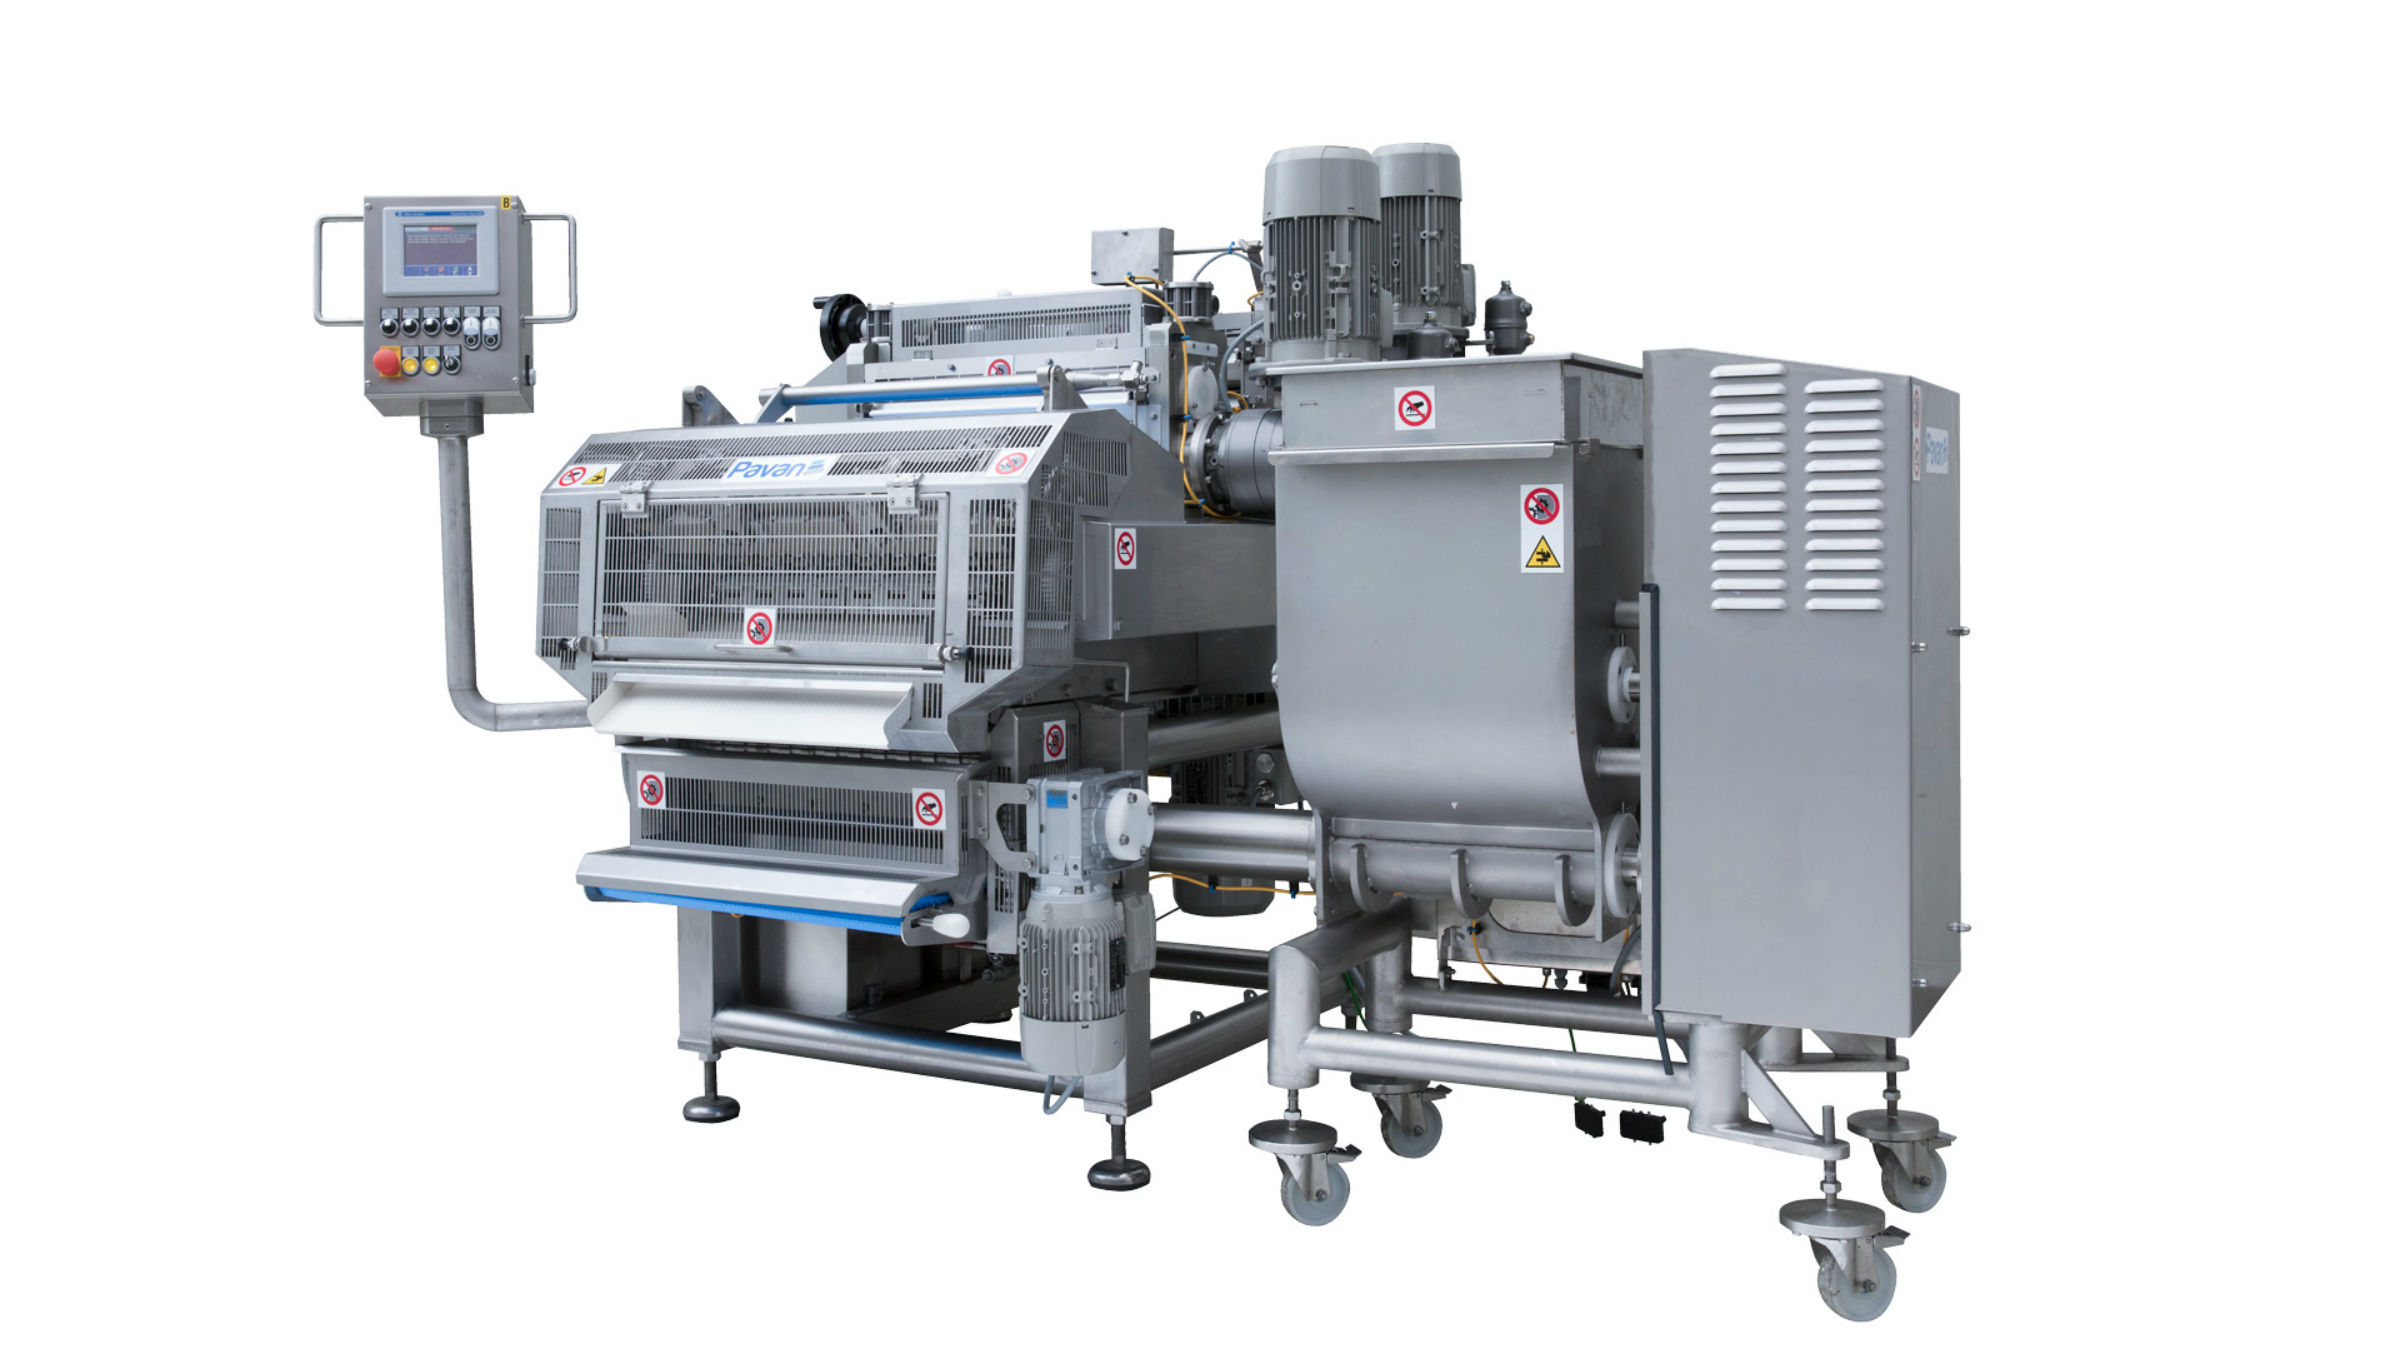 MRD540 single sheet filling and forming machine for fresh pasta with a lobe pump for filling dosage (Photo Pavan/GEA)